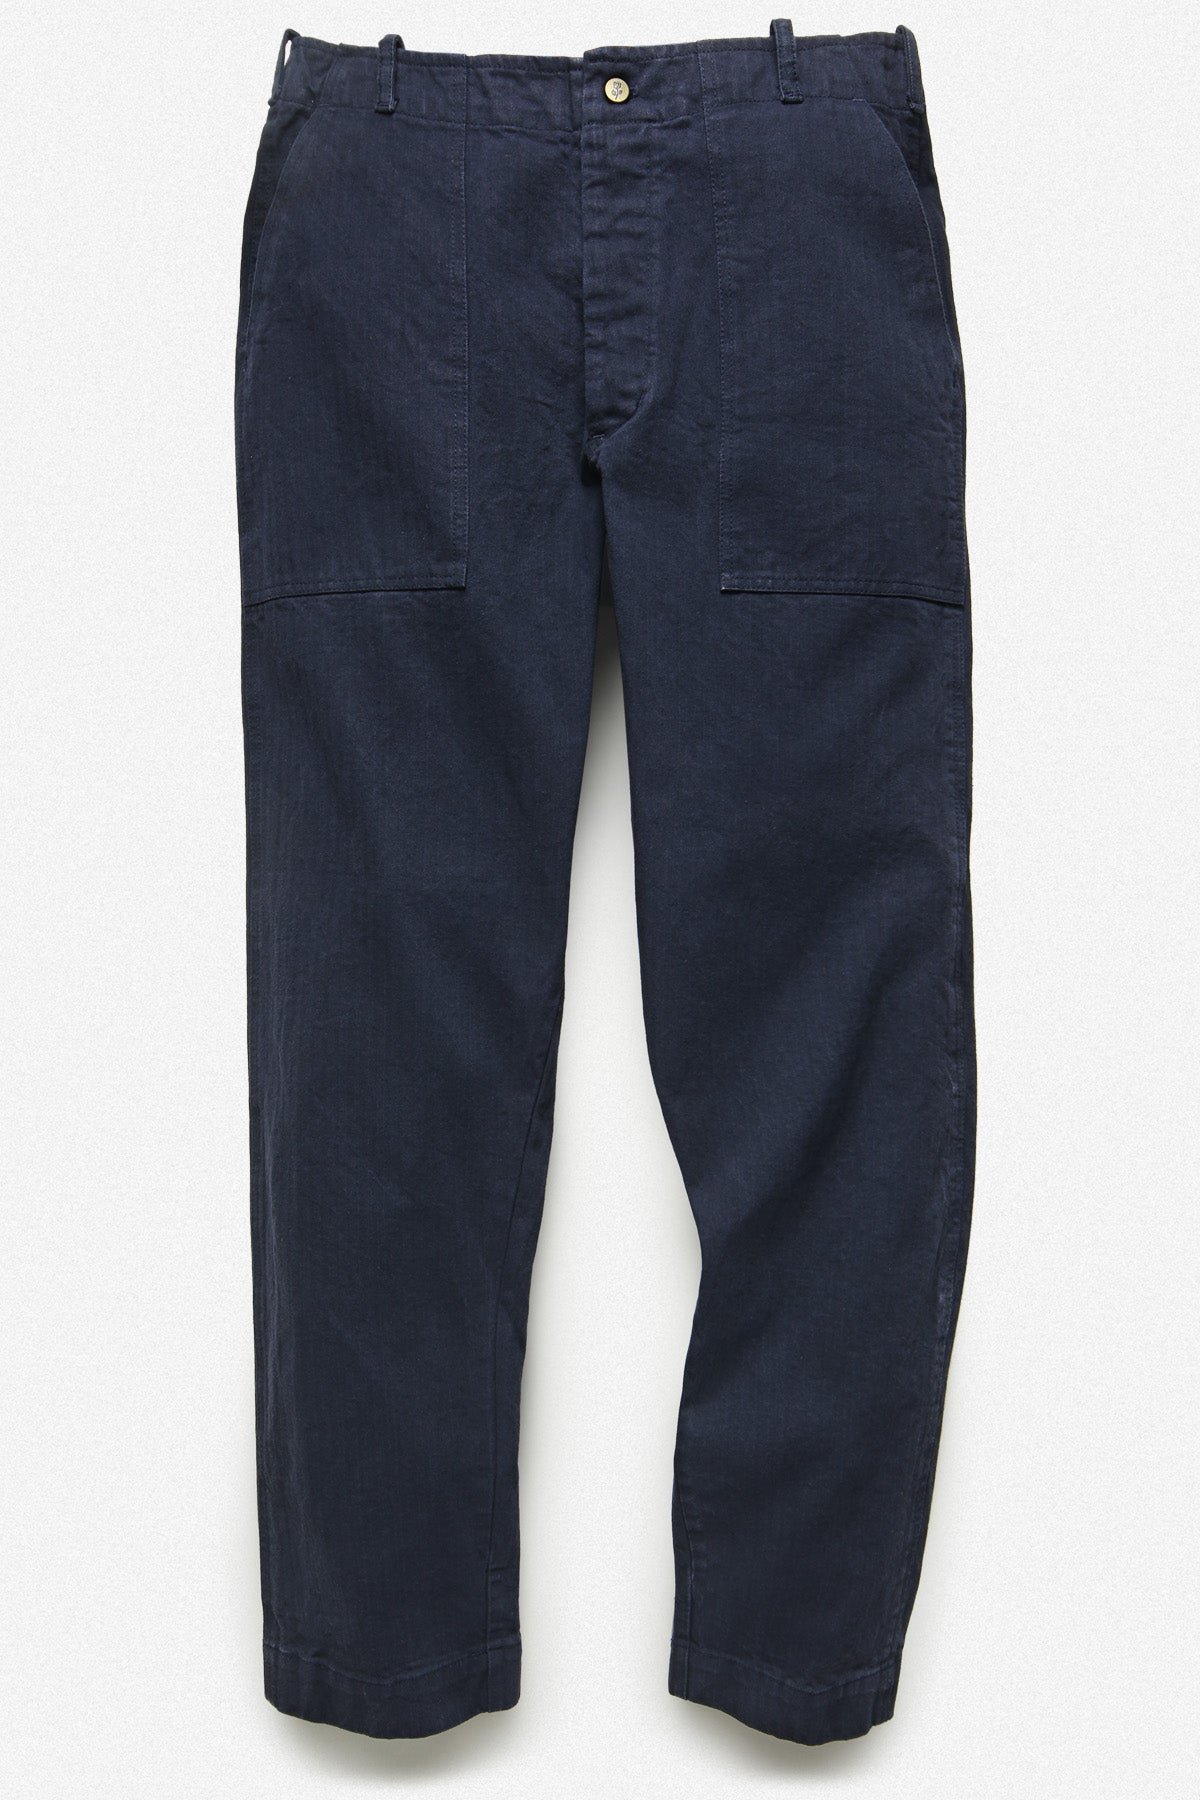 107 PANT IN NAVY HERRINGBONE TWILL - Fortune Goods